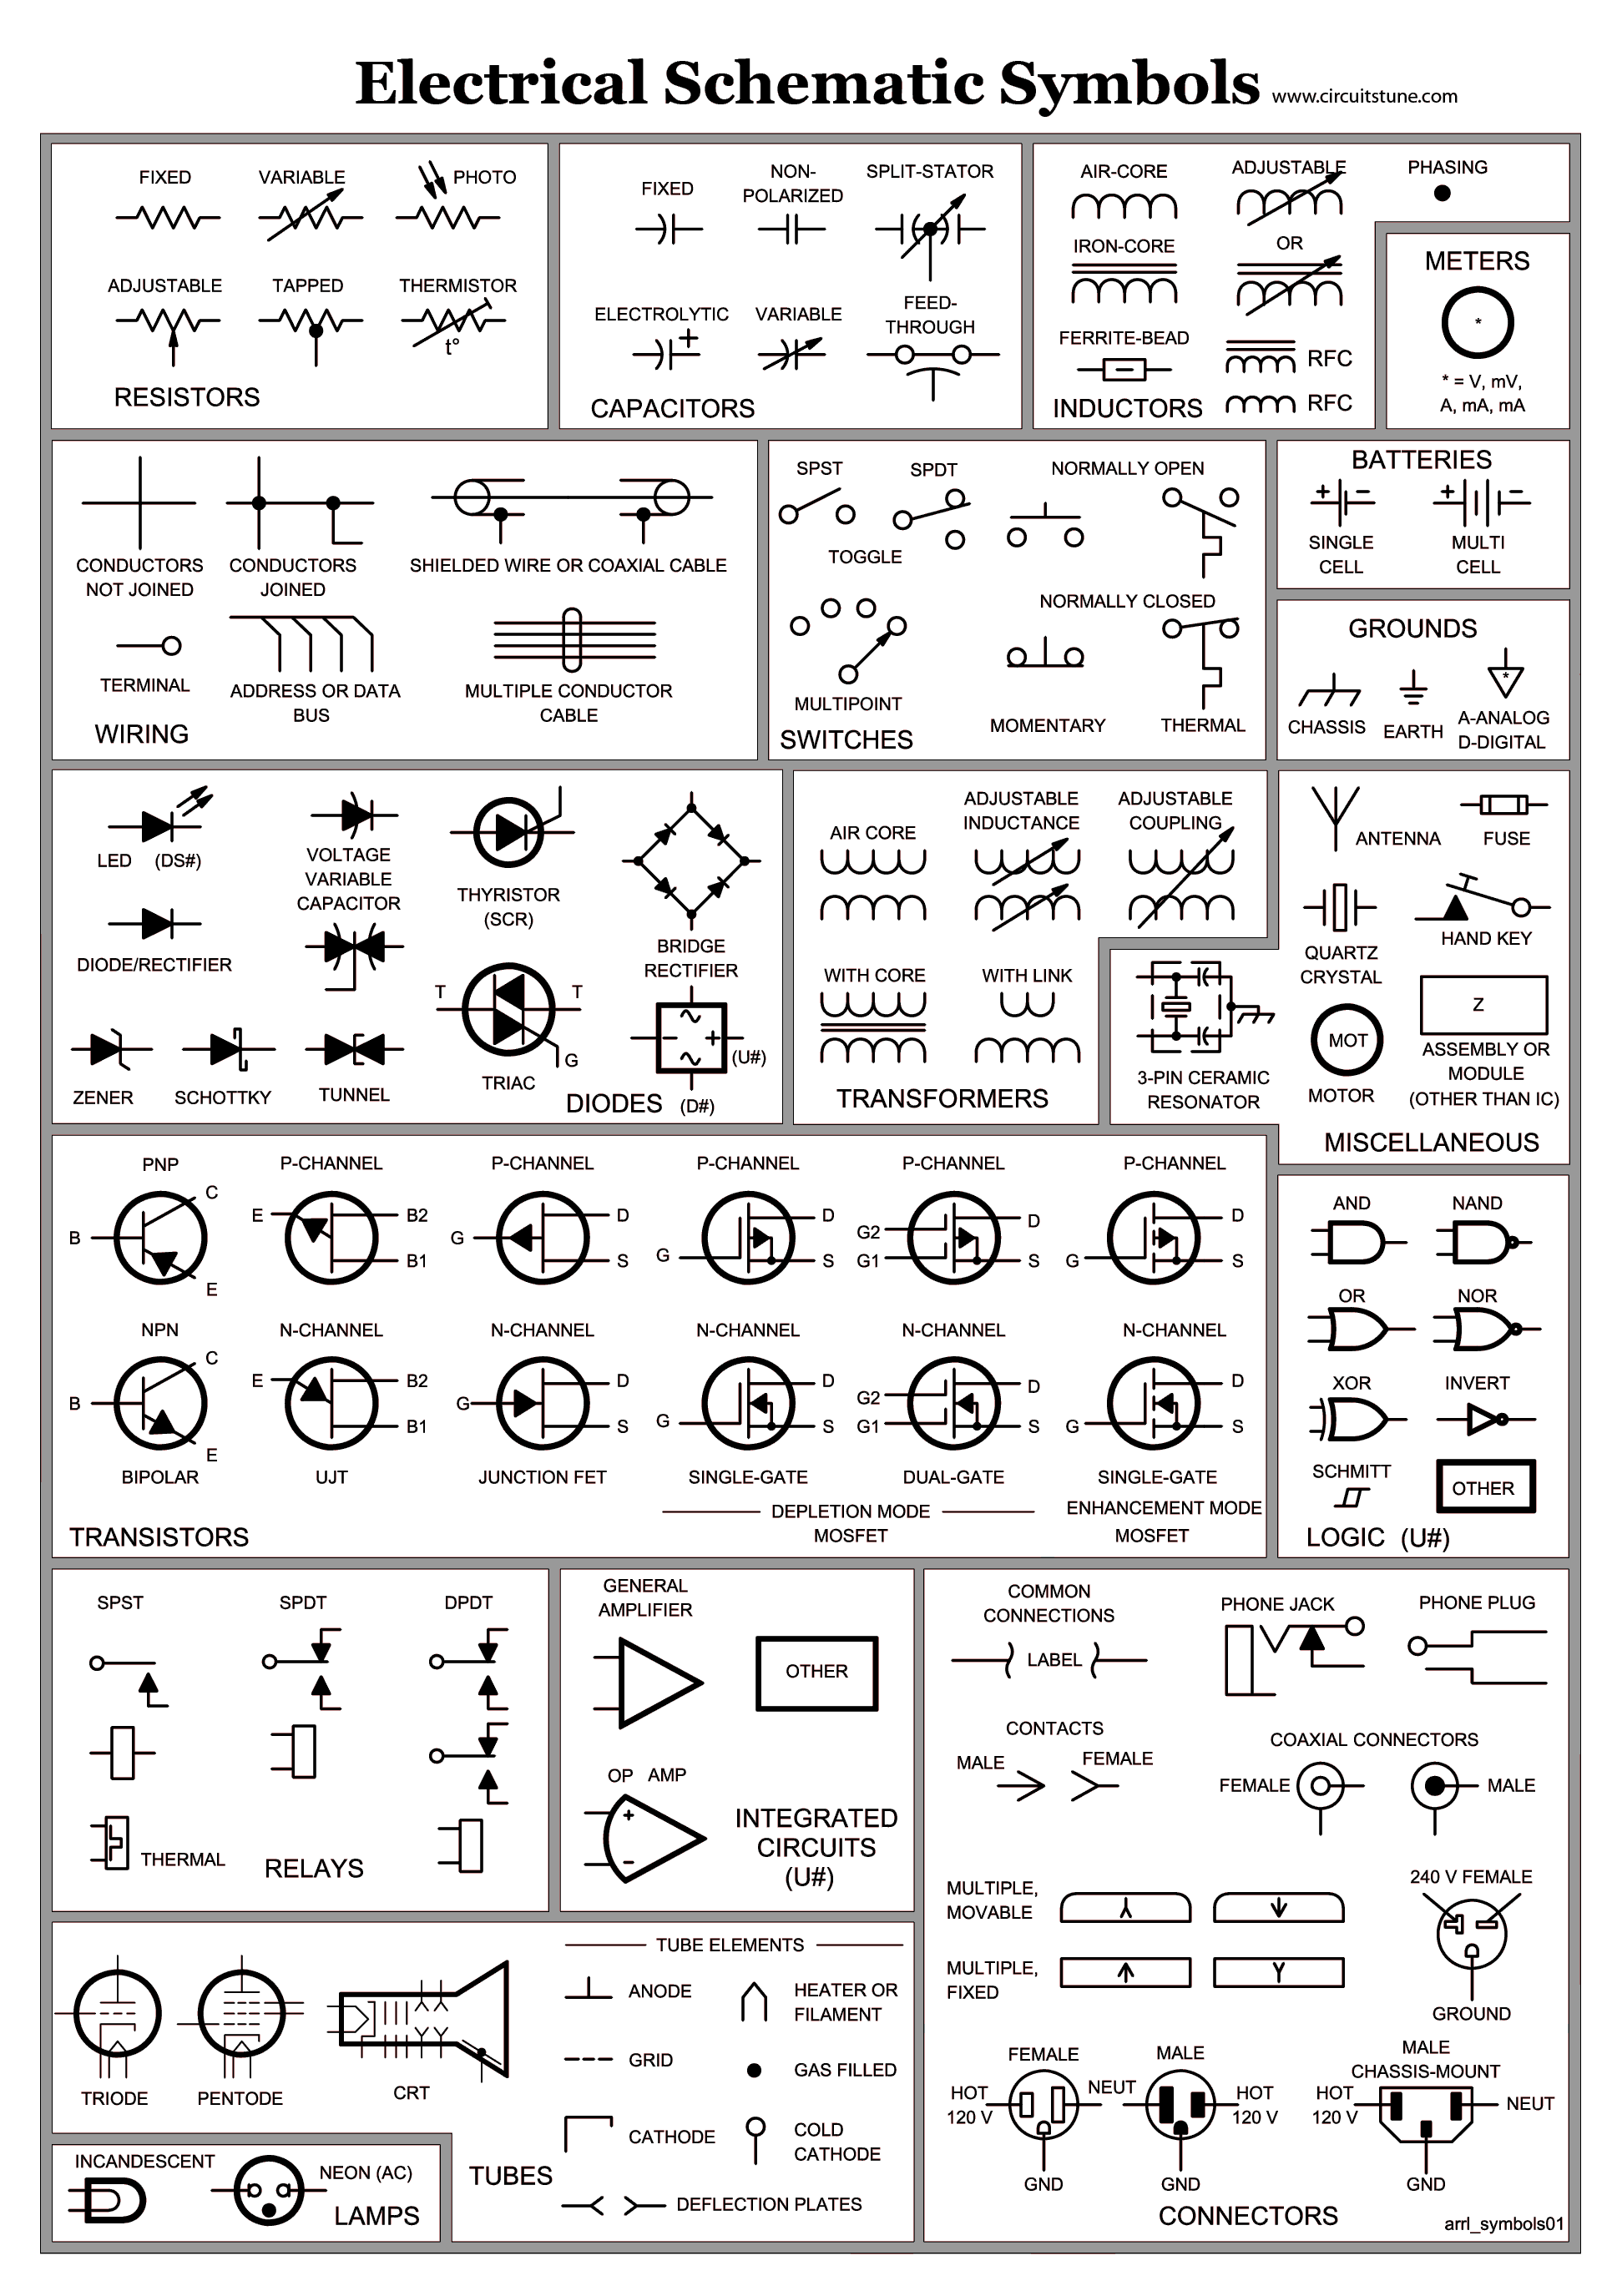 a65d176364692d2ebe913b58a654cfc3 wiring diagram symbols pdf wiring diagram cbr \u2022 wiring diagrams how to read automotive wiring diagrams pdf at n-0.co